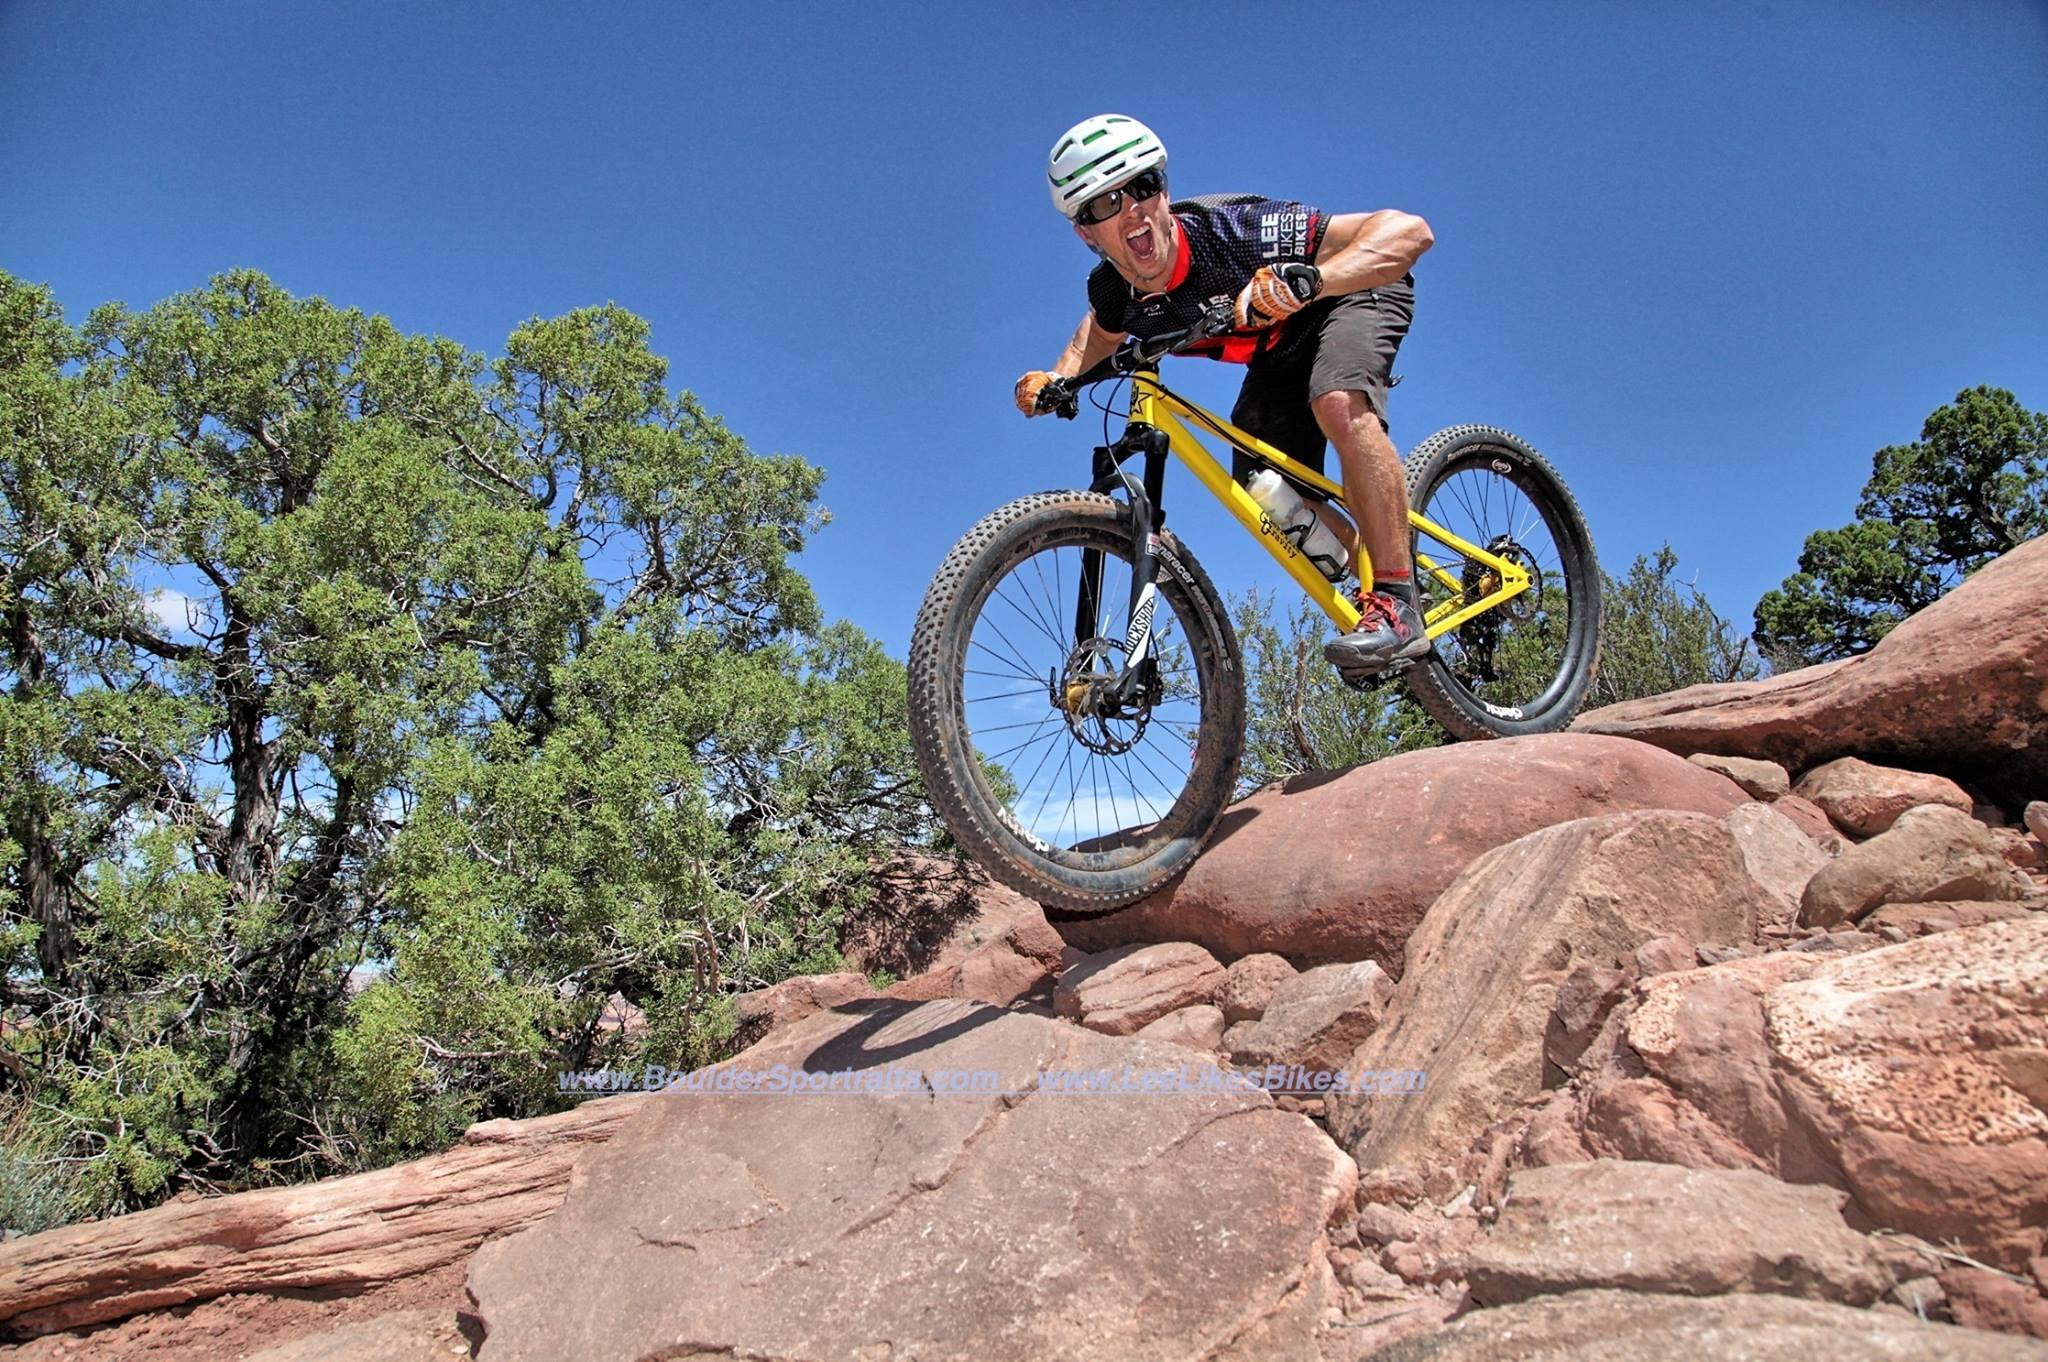 Kevin stoked while Riding rock garden with a capital R in Moab